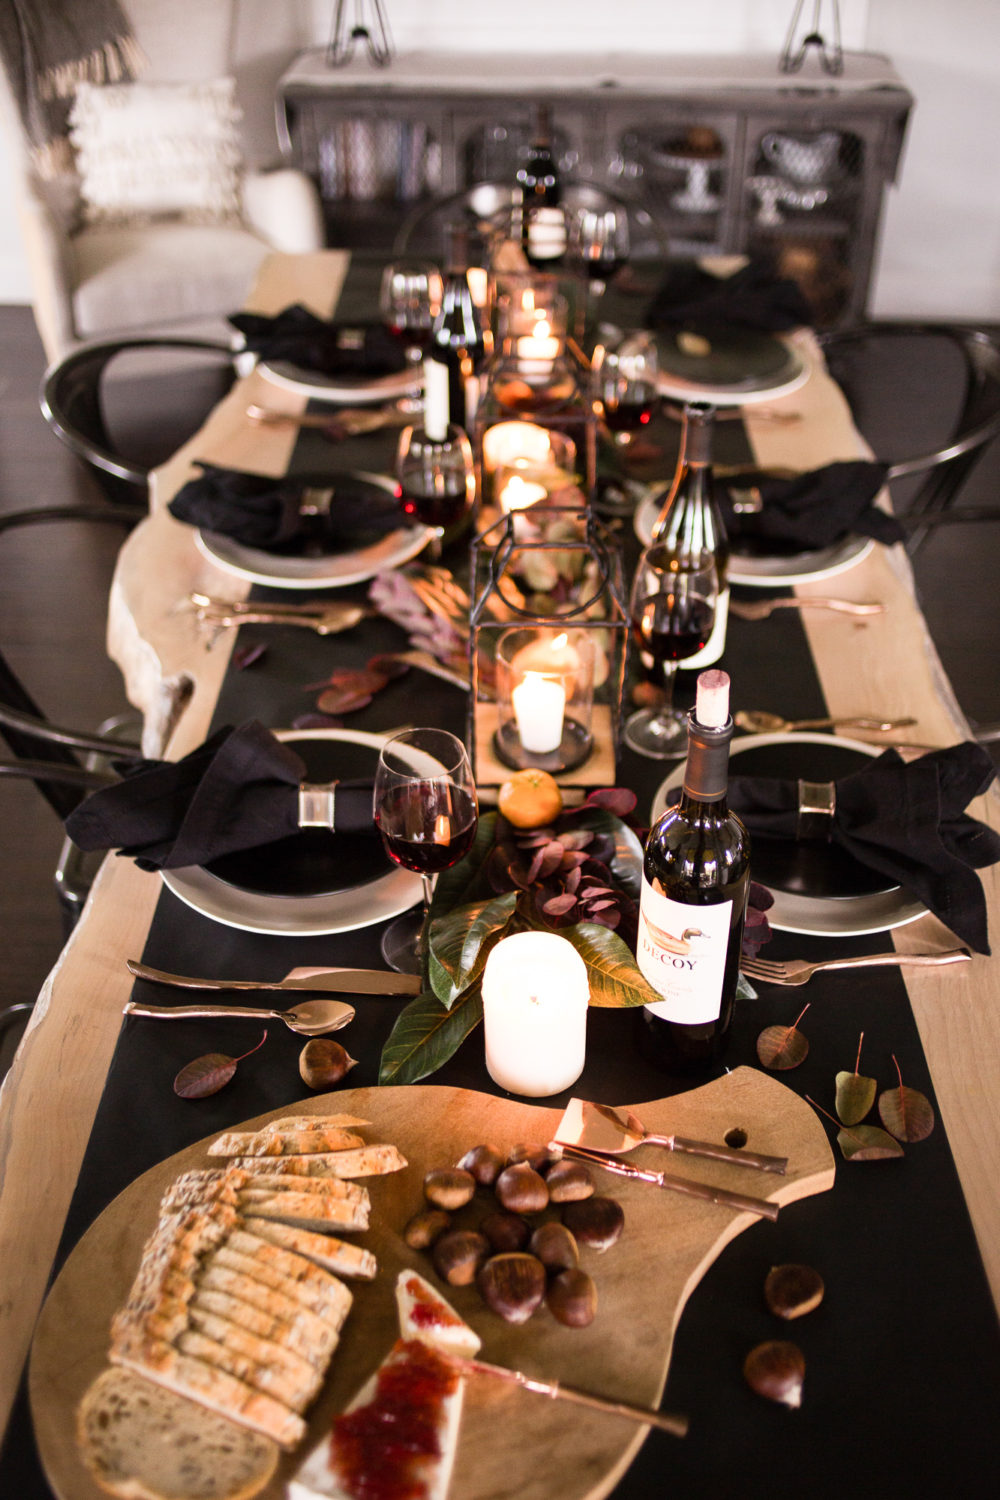 Timeless and classic, dark and moody Thanksgiving tablescape with magnolia leaves and clementine oranges with pops of copper.